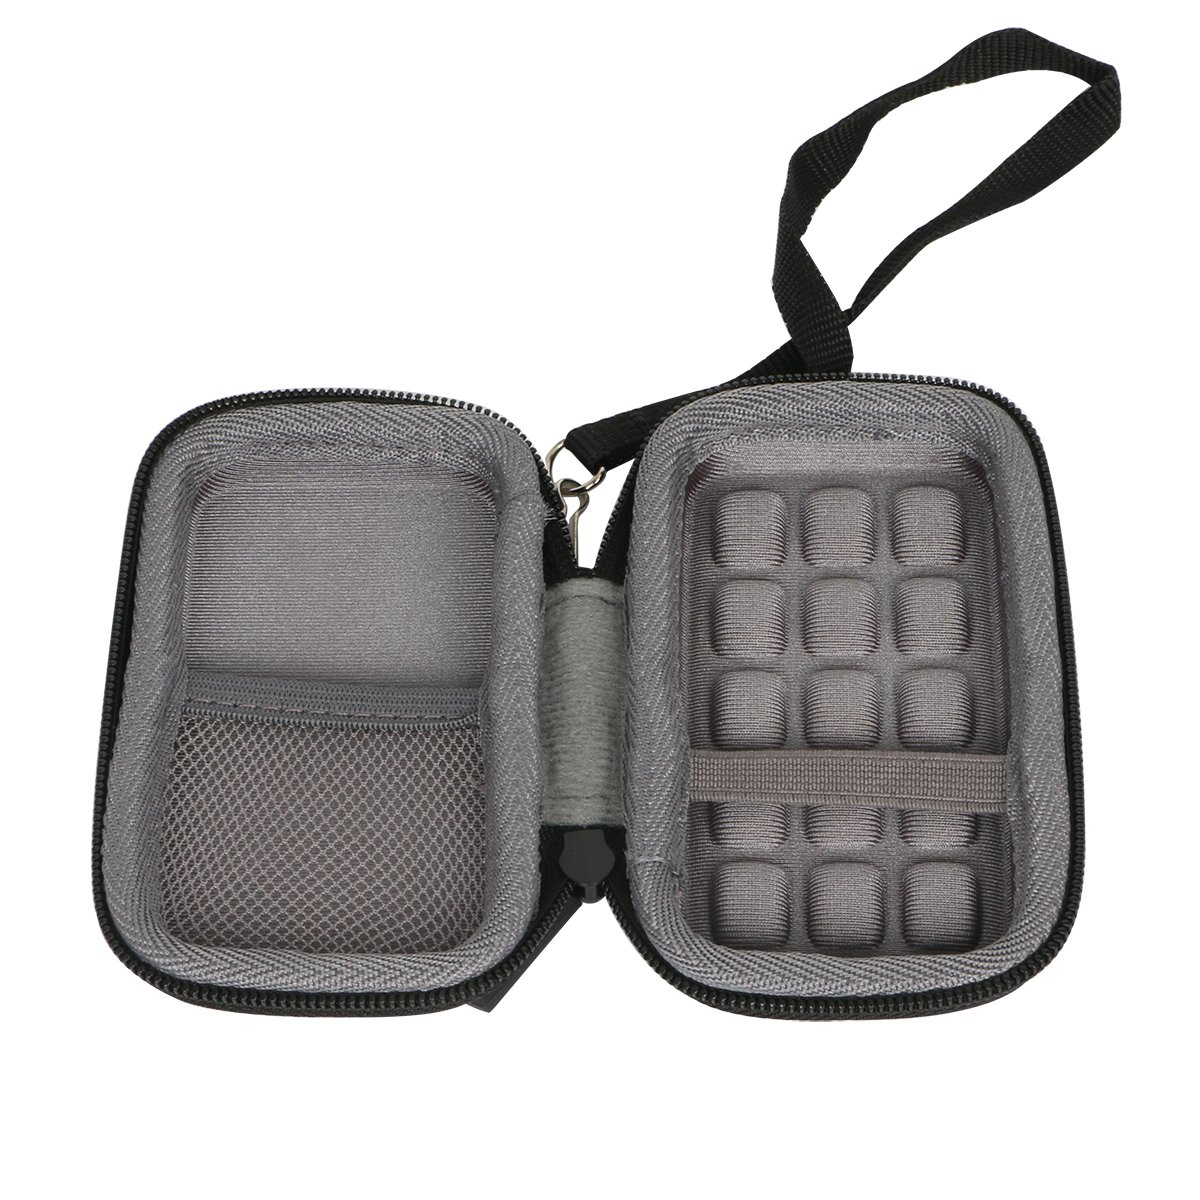 Hard Travel Case for WD My Passport SSD Portable Storage 1TB 2TB 3TB 4TB by co2CREA (Size 2) by Co2Crea (Image #2)